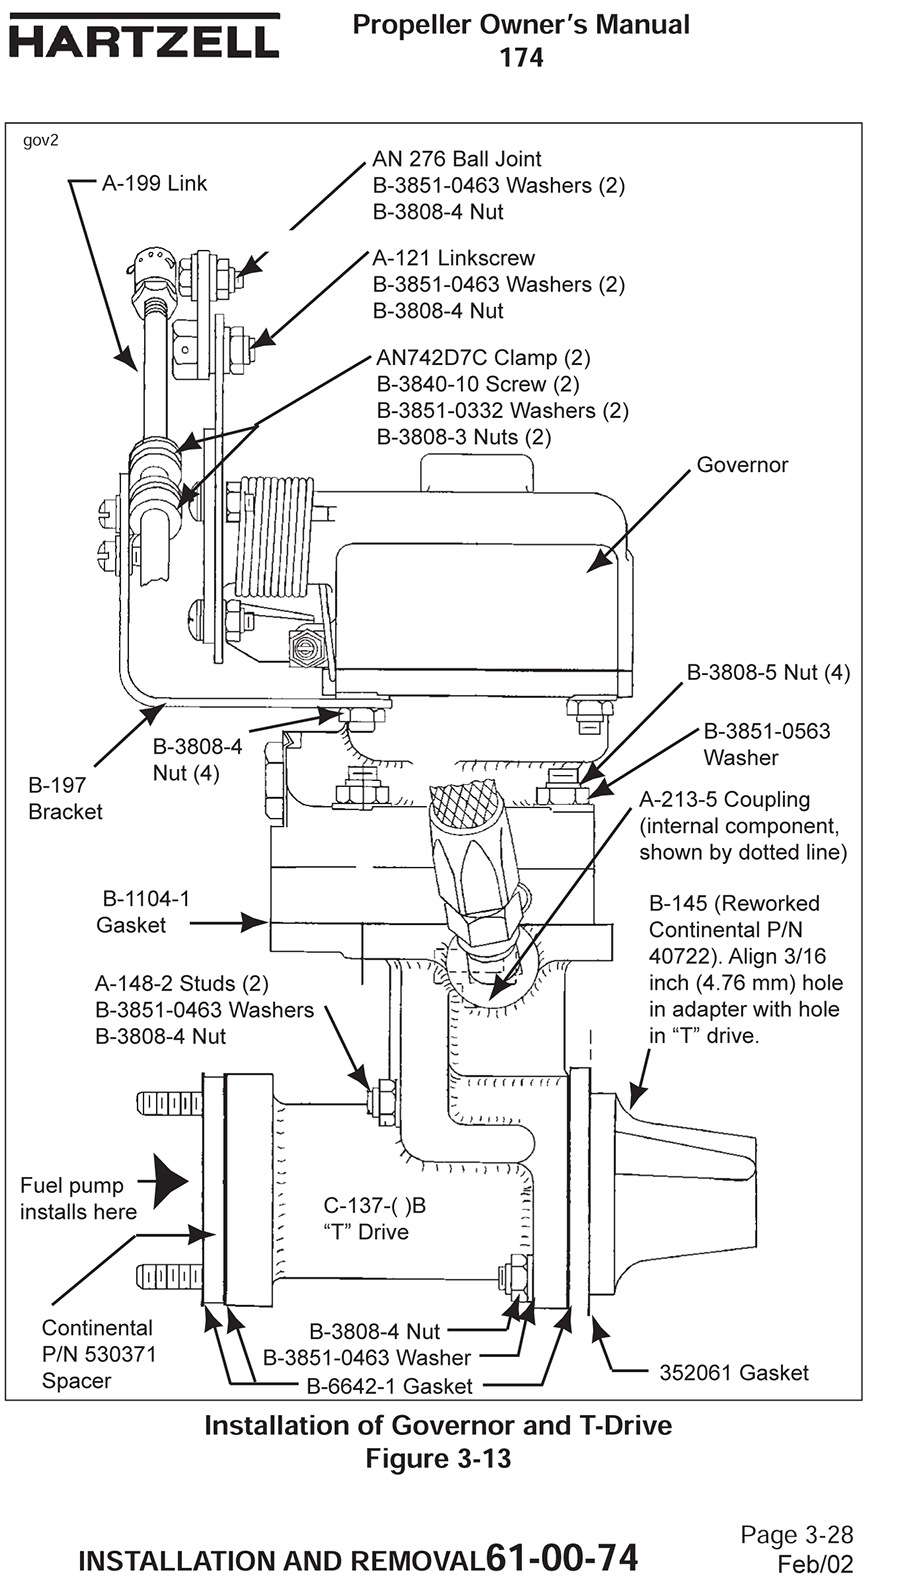 HARTZELL PROPELLER MANUAL 118F - Auto Electrical Wiring Diagram on